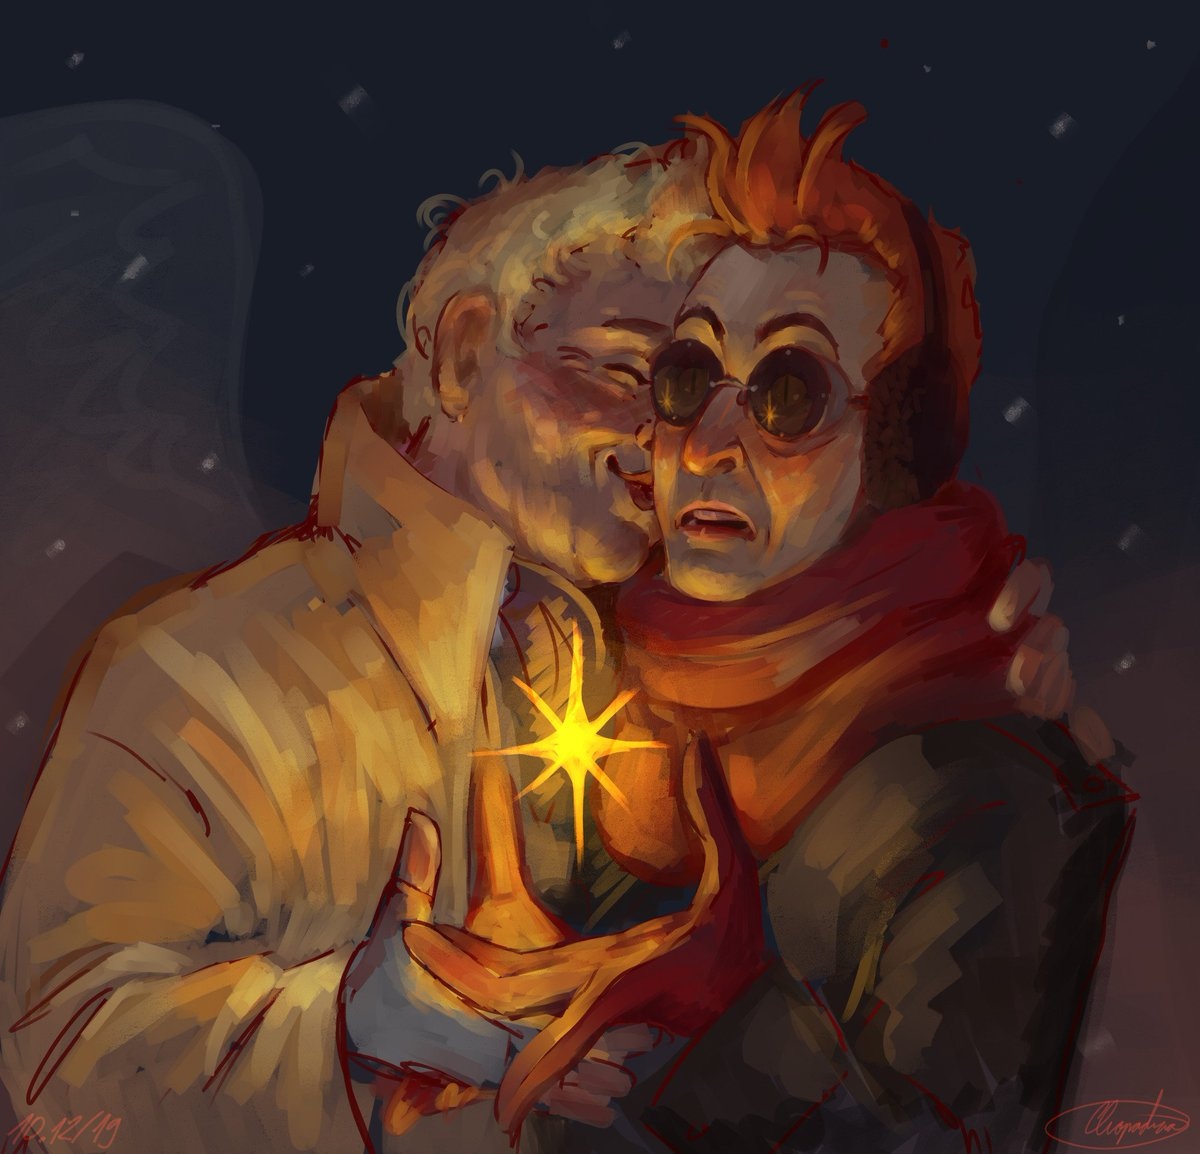 Here, rushed kissy wintry thing. I have a presentation tomorrow and i literally couldn't get myself to work on it until i sketch-painted something. #GoodOmensFanArt #GoodOmens #ineffablehusbands #winter<br>http://pic.twitter.com/r2DGisQQni